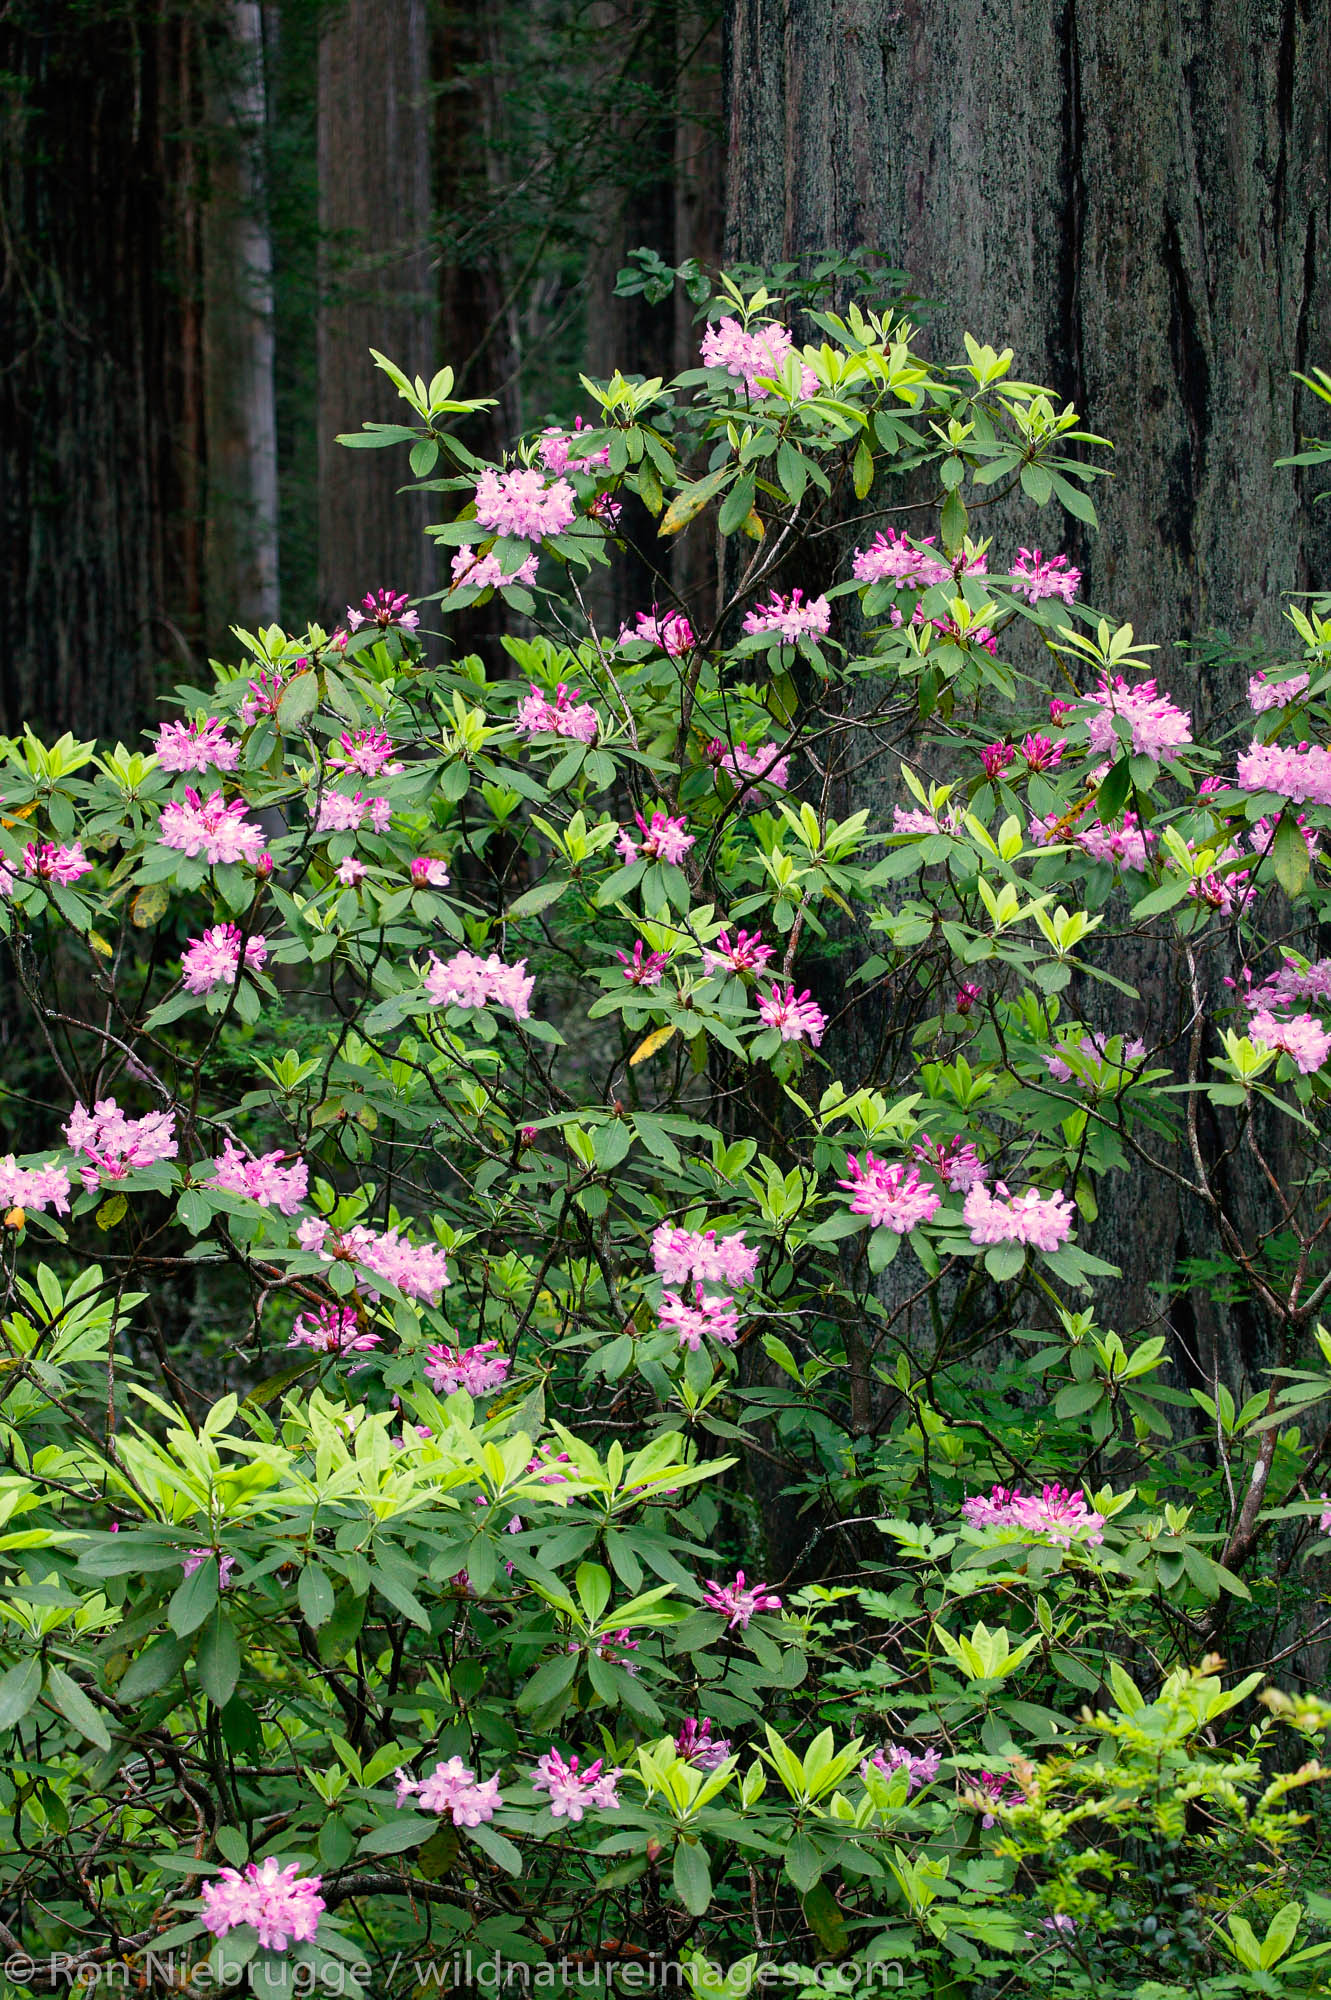 Rhododendrons in Del Norte Coast Redwoods State Park, part of the Redwoods State and National Parks, California.